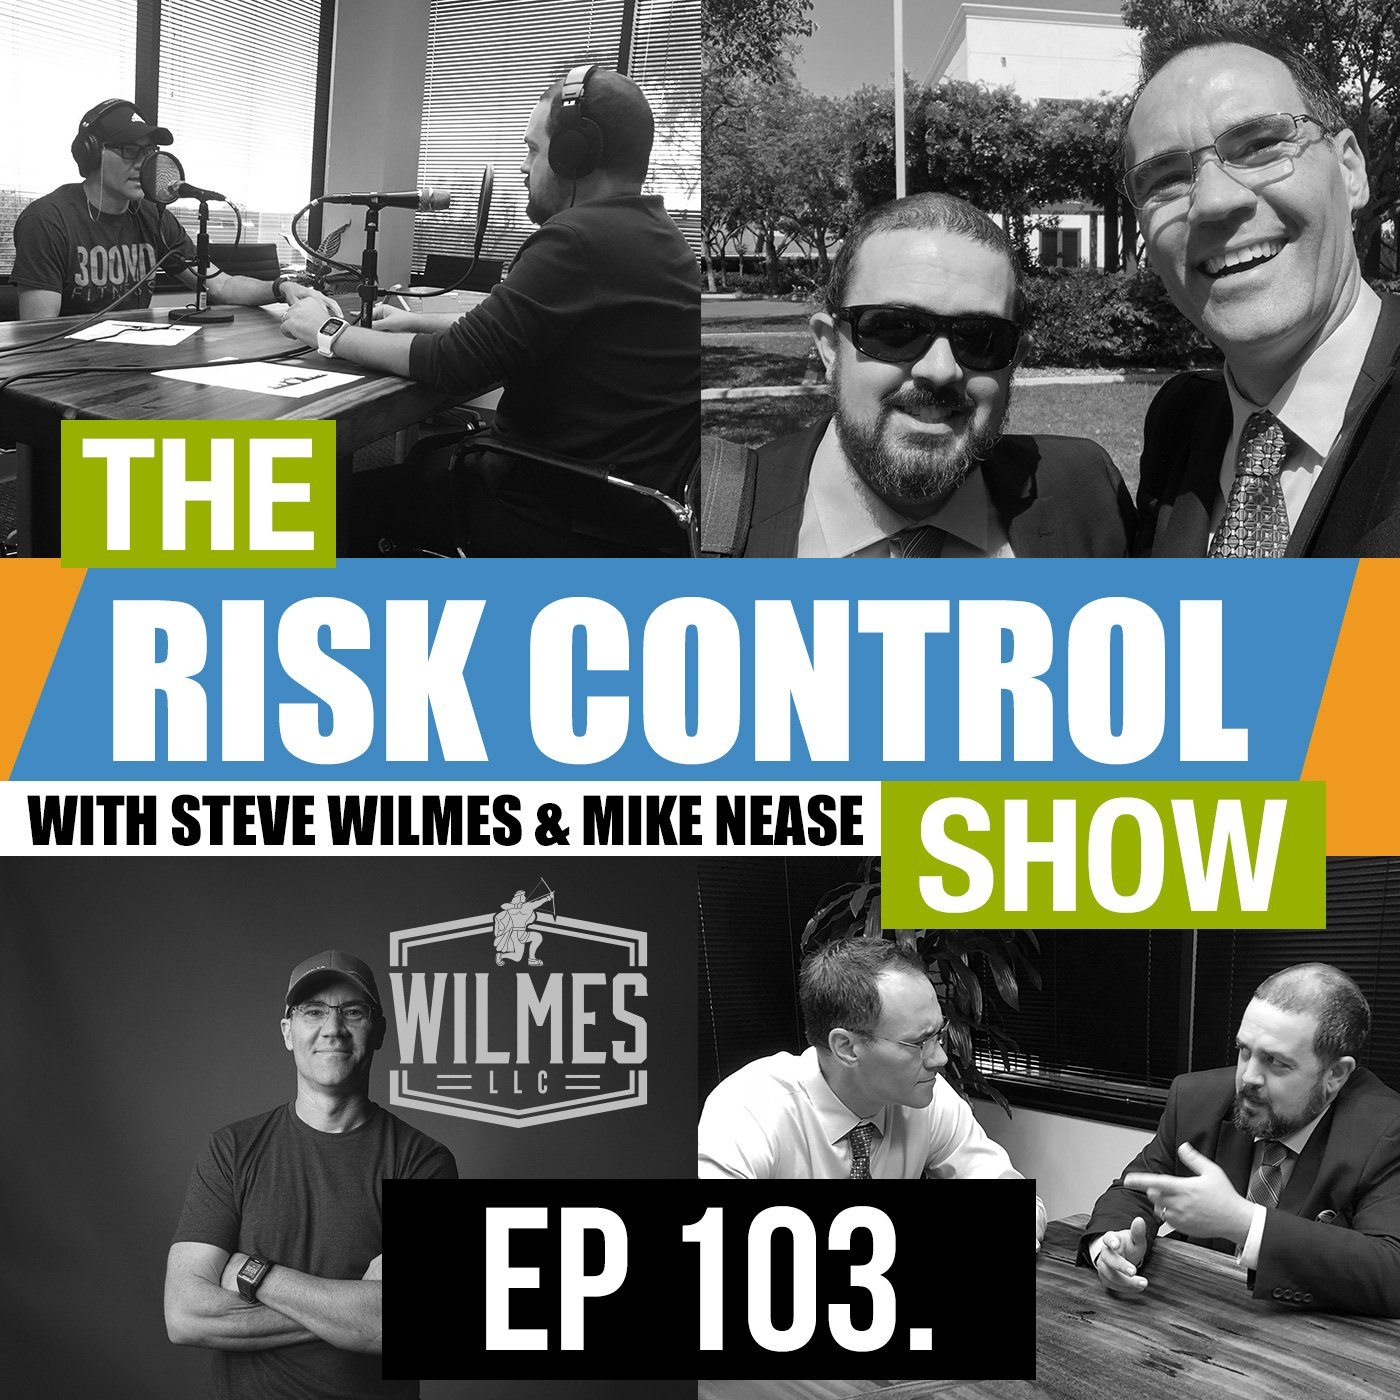 The Risk Control Show Episode 103